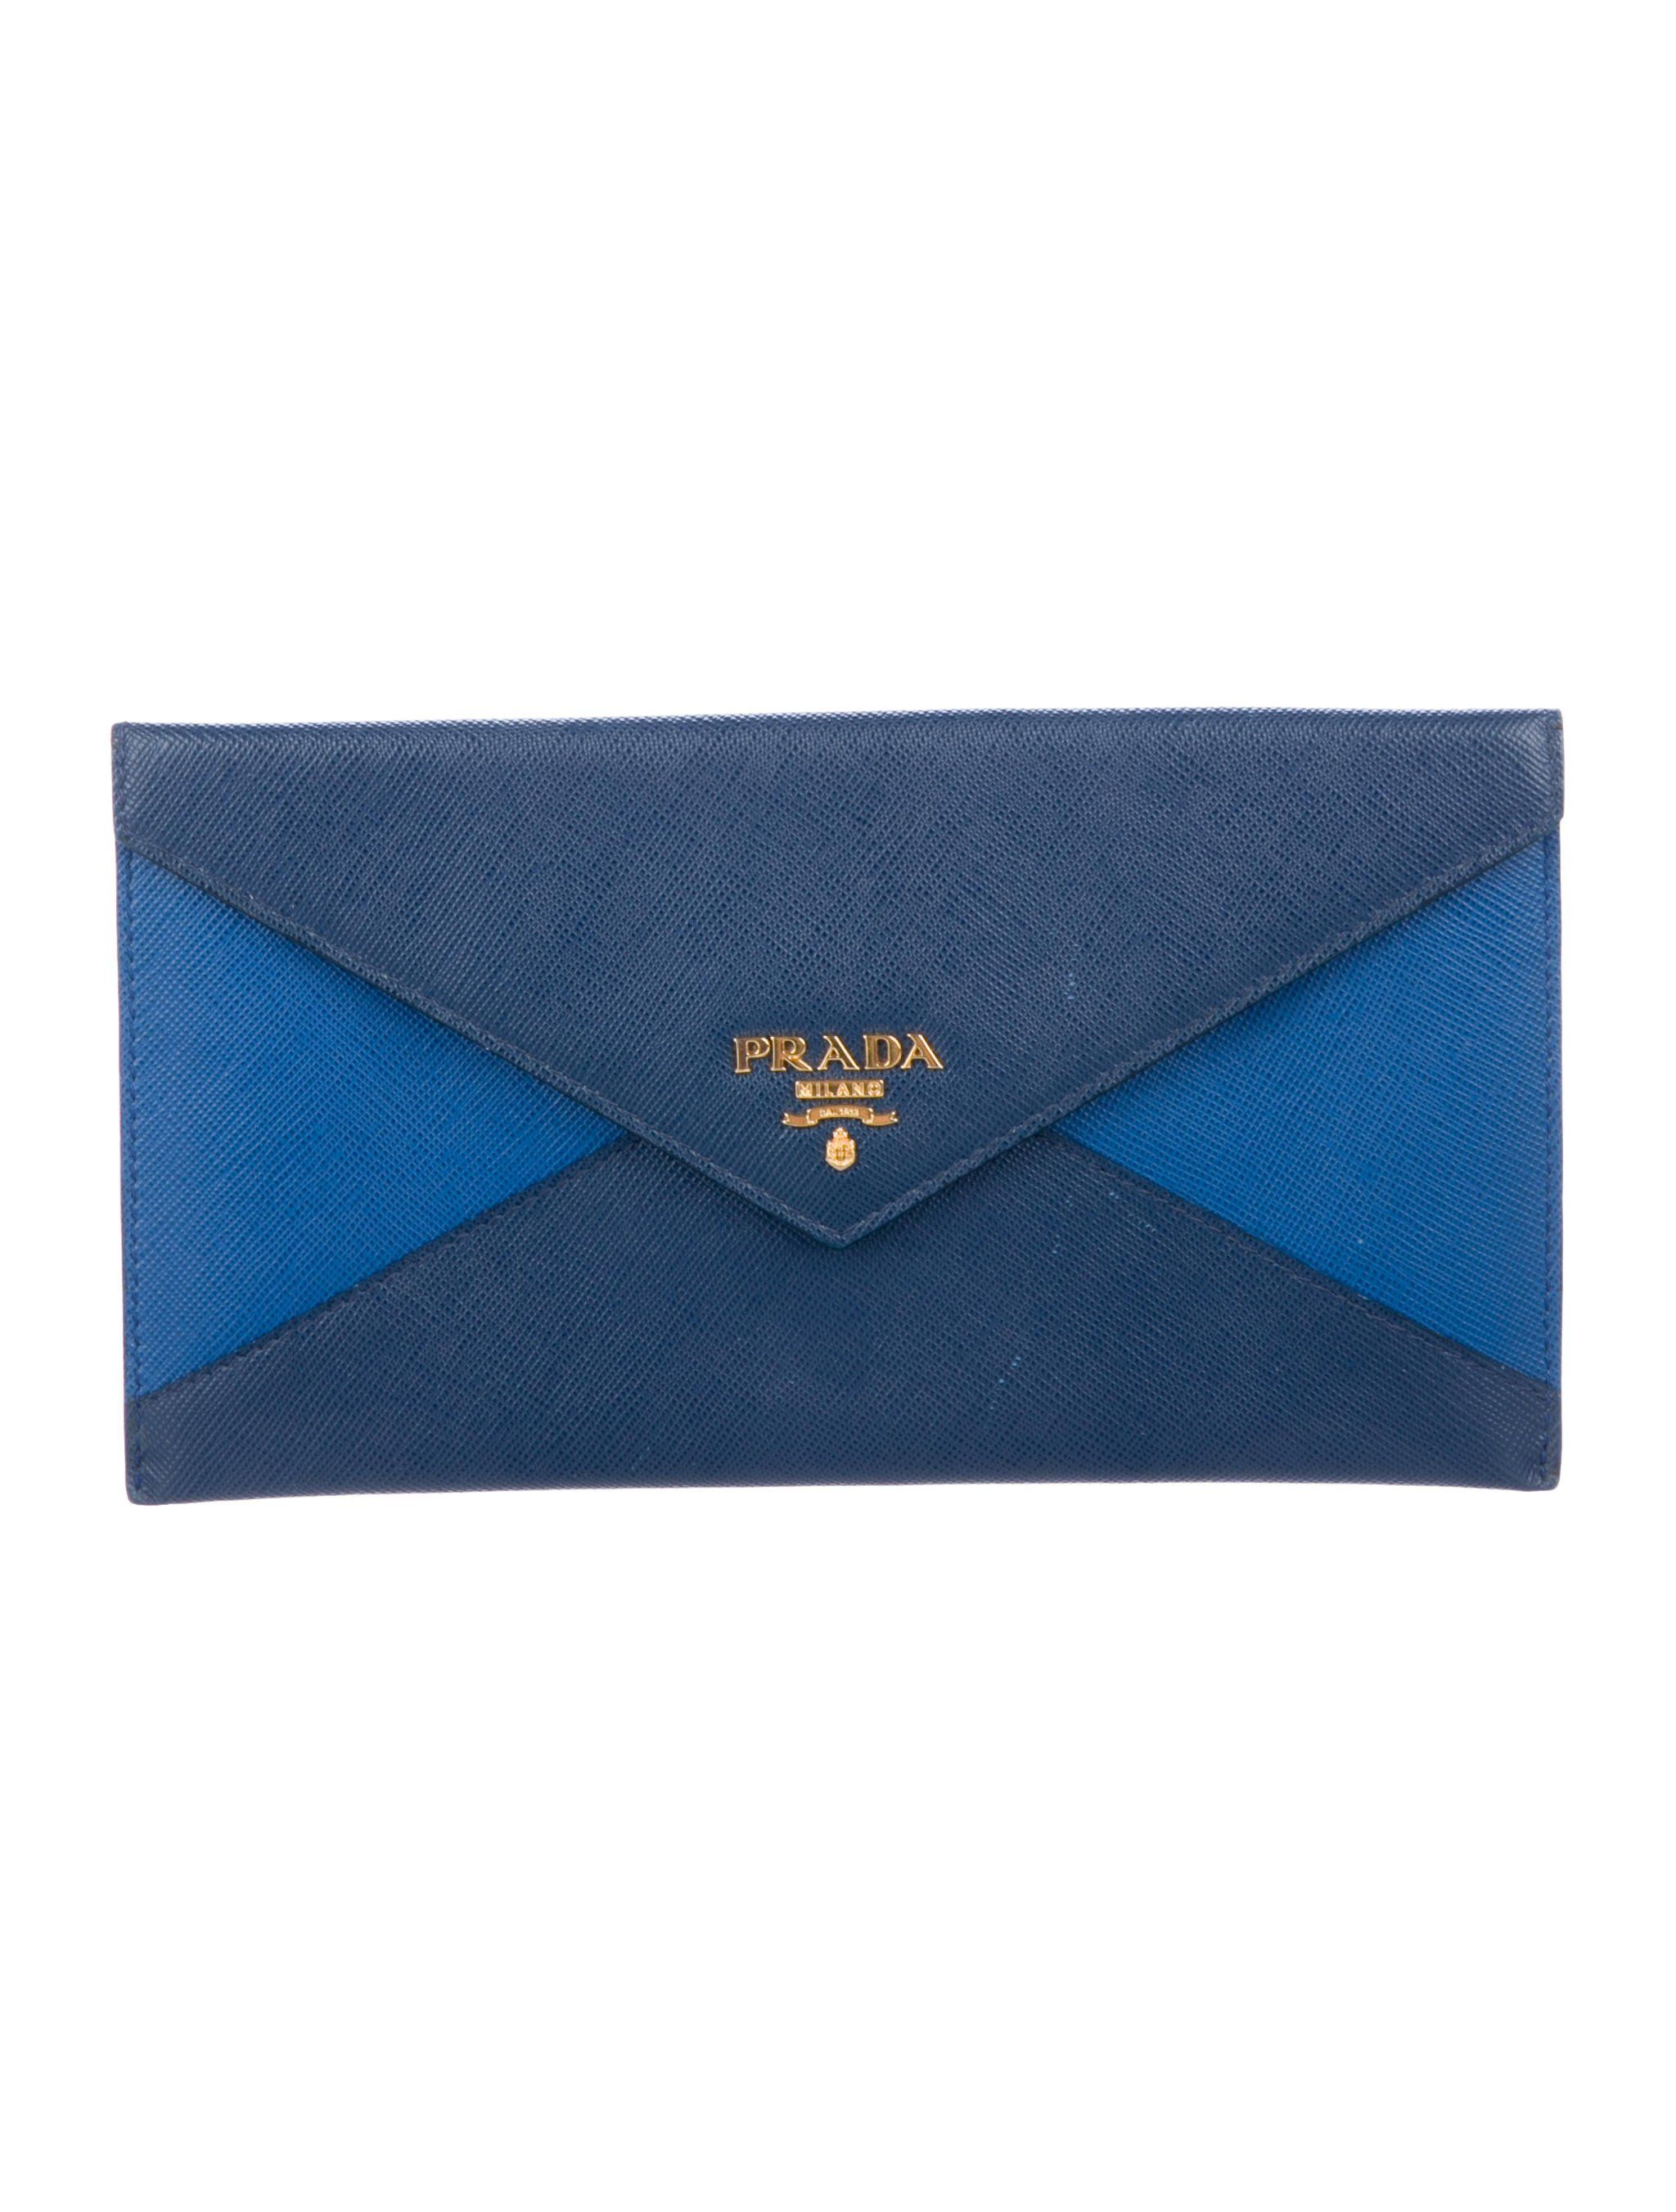 6c90528458ebd6 Blue and navy Saffiano leather Prada envelope wallet with gold-tone  hardware, exterior zip